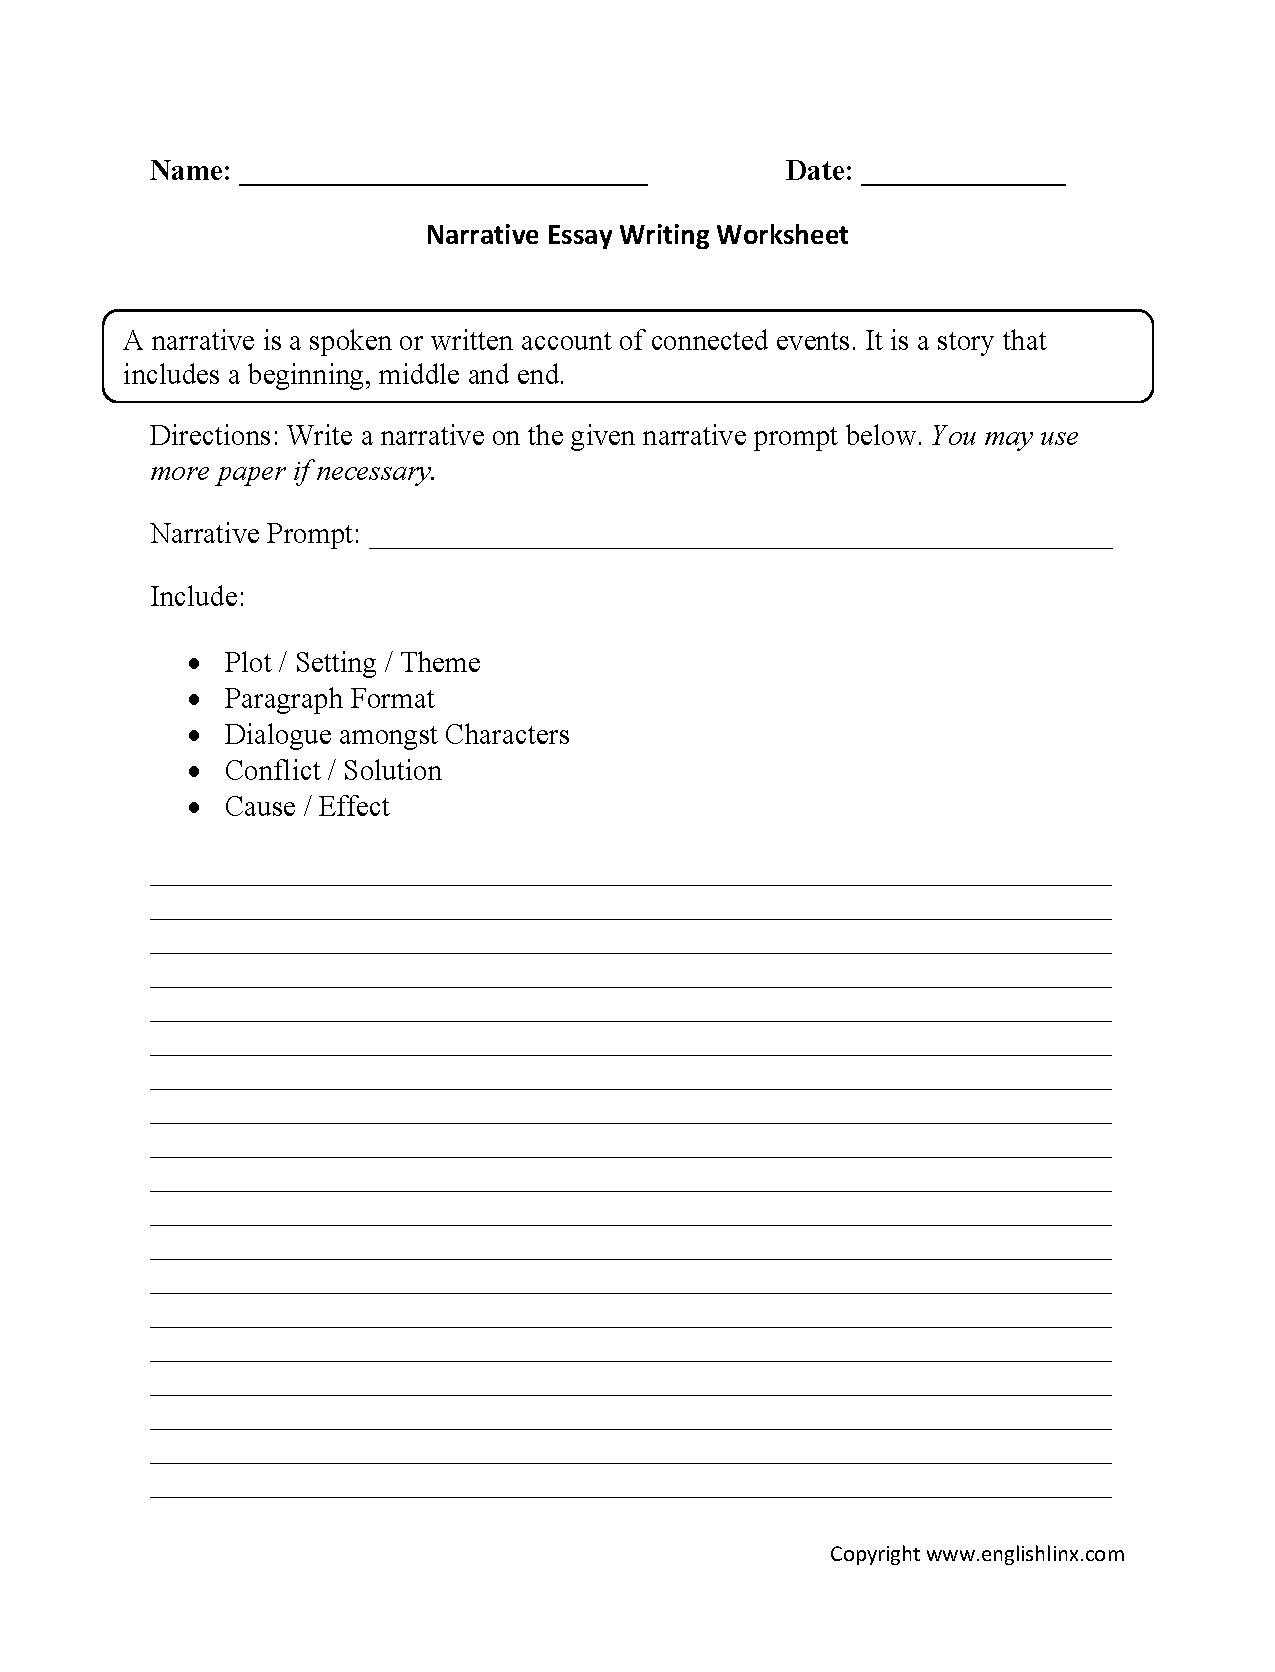 writing worksheets essay writing worksheets narrative essay writing worksheets